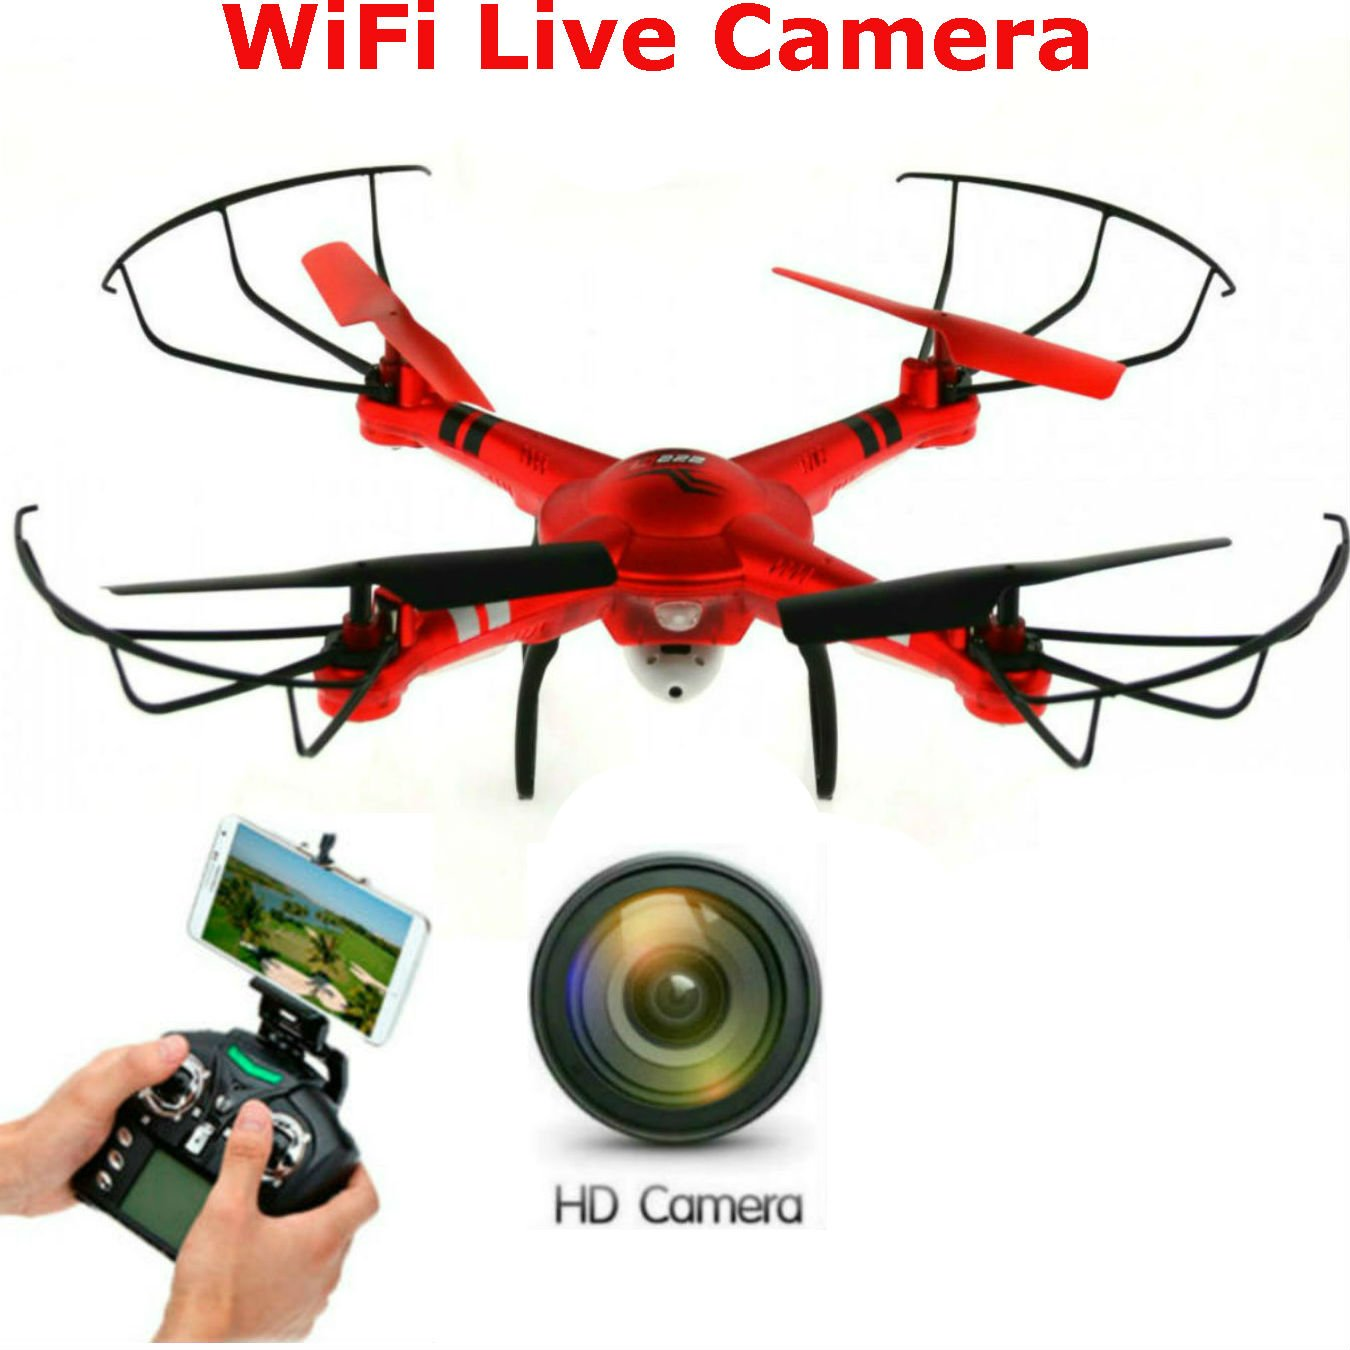 New SkyCo Q222K Rc Drone With Camera Live Video Quadcopter 4 Ch 2.4ghz 6-gyro,Headless System Drone Live Camera HD One-Key-return & Take Off Barometer Air Pressure Set Helicopter WiFi FPV (Red)